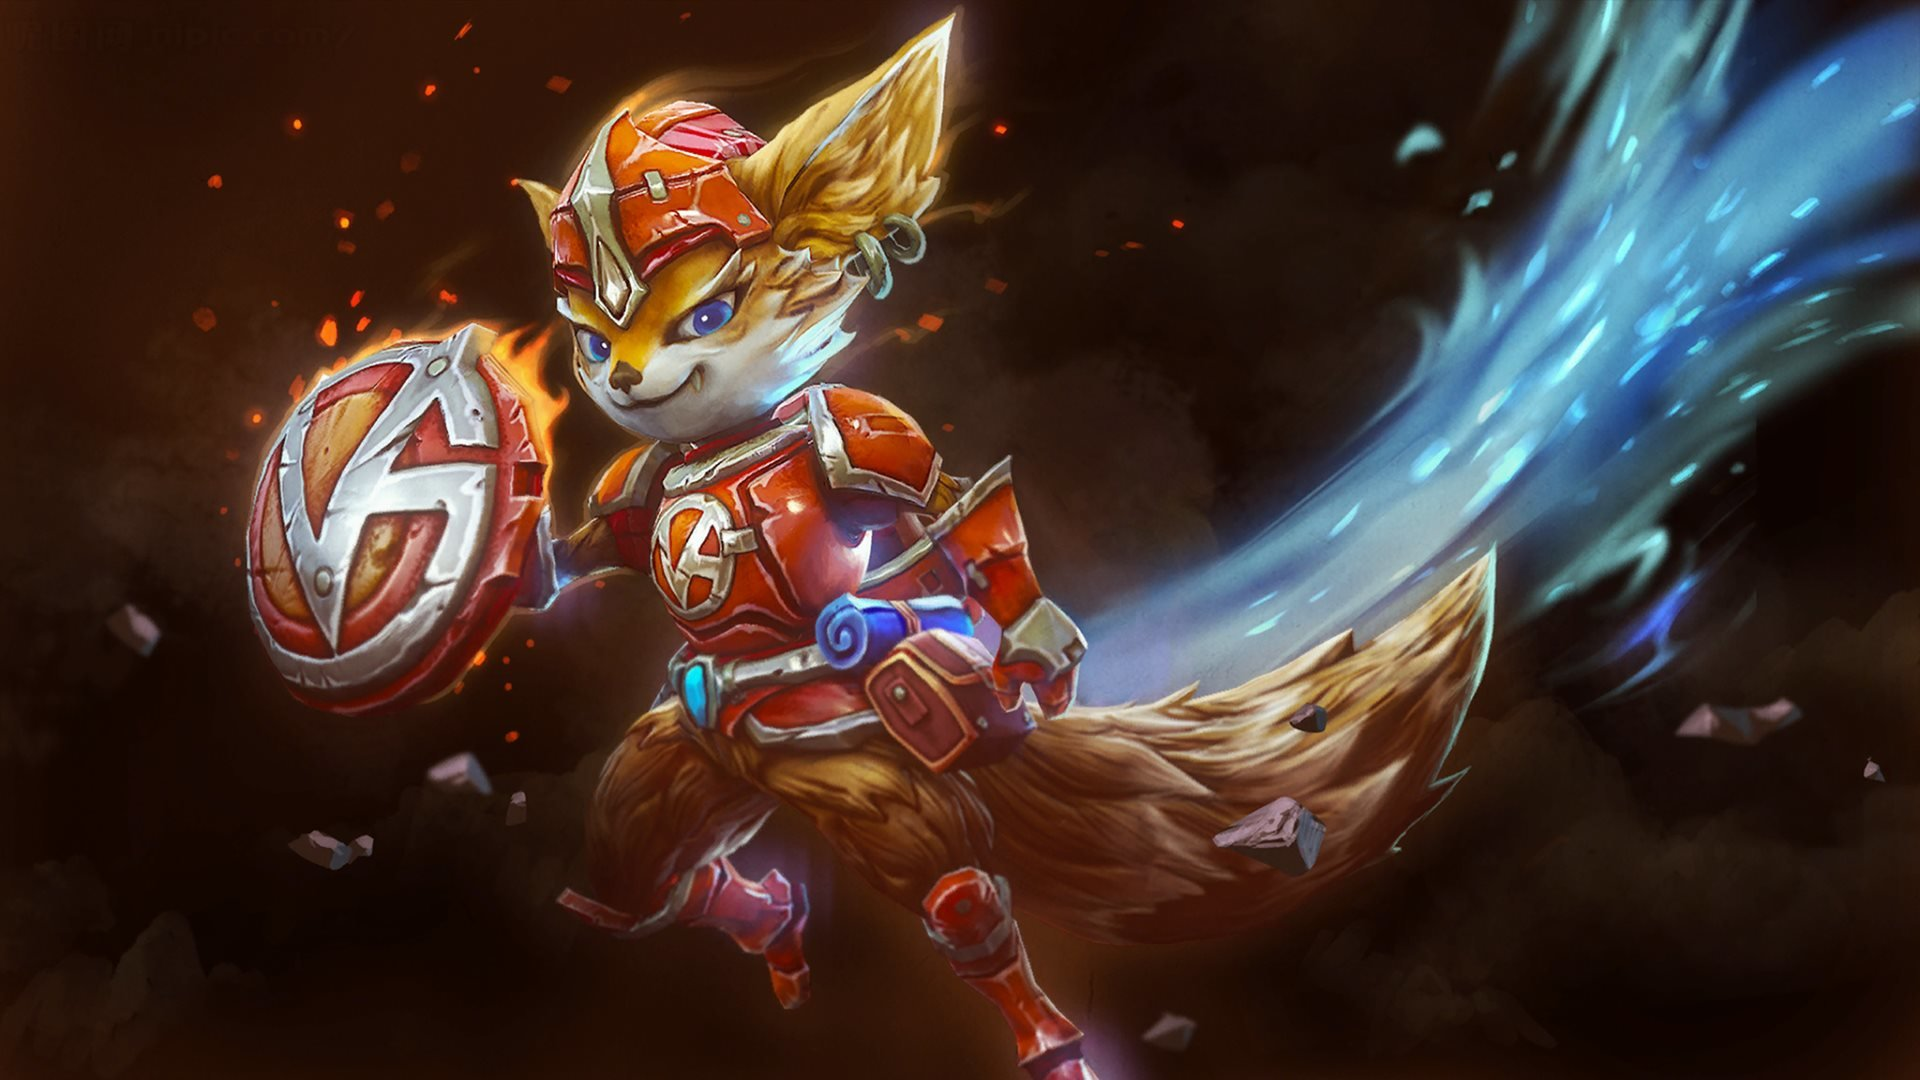 HD Exclusive Full Hd Dota 2 Wallpaper For Android ...